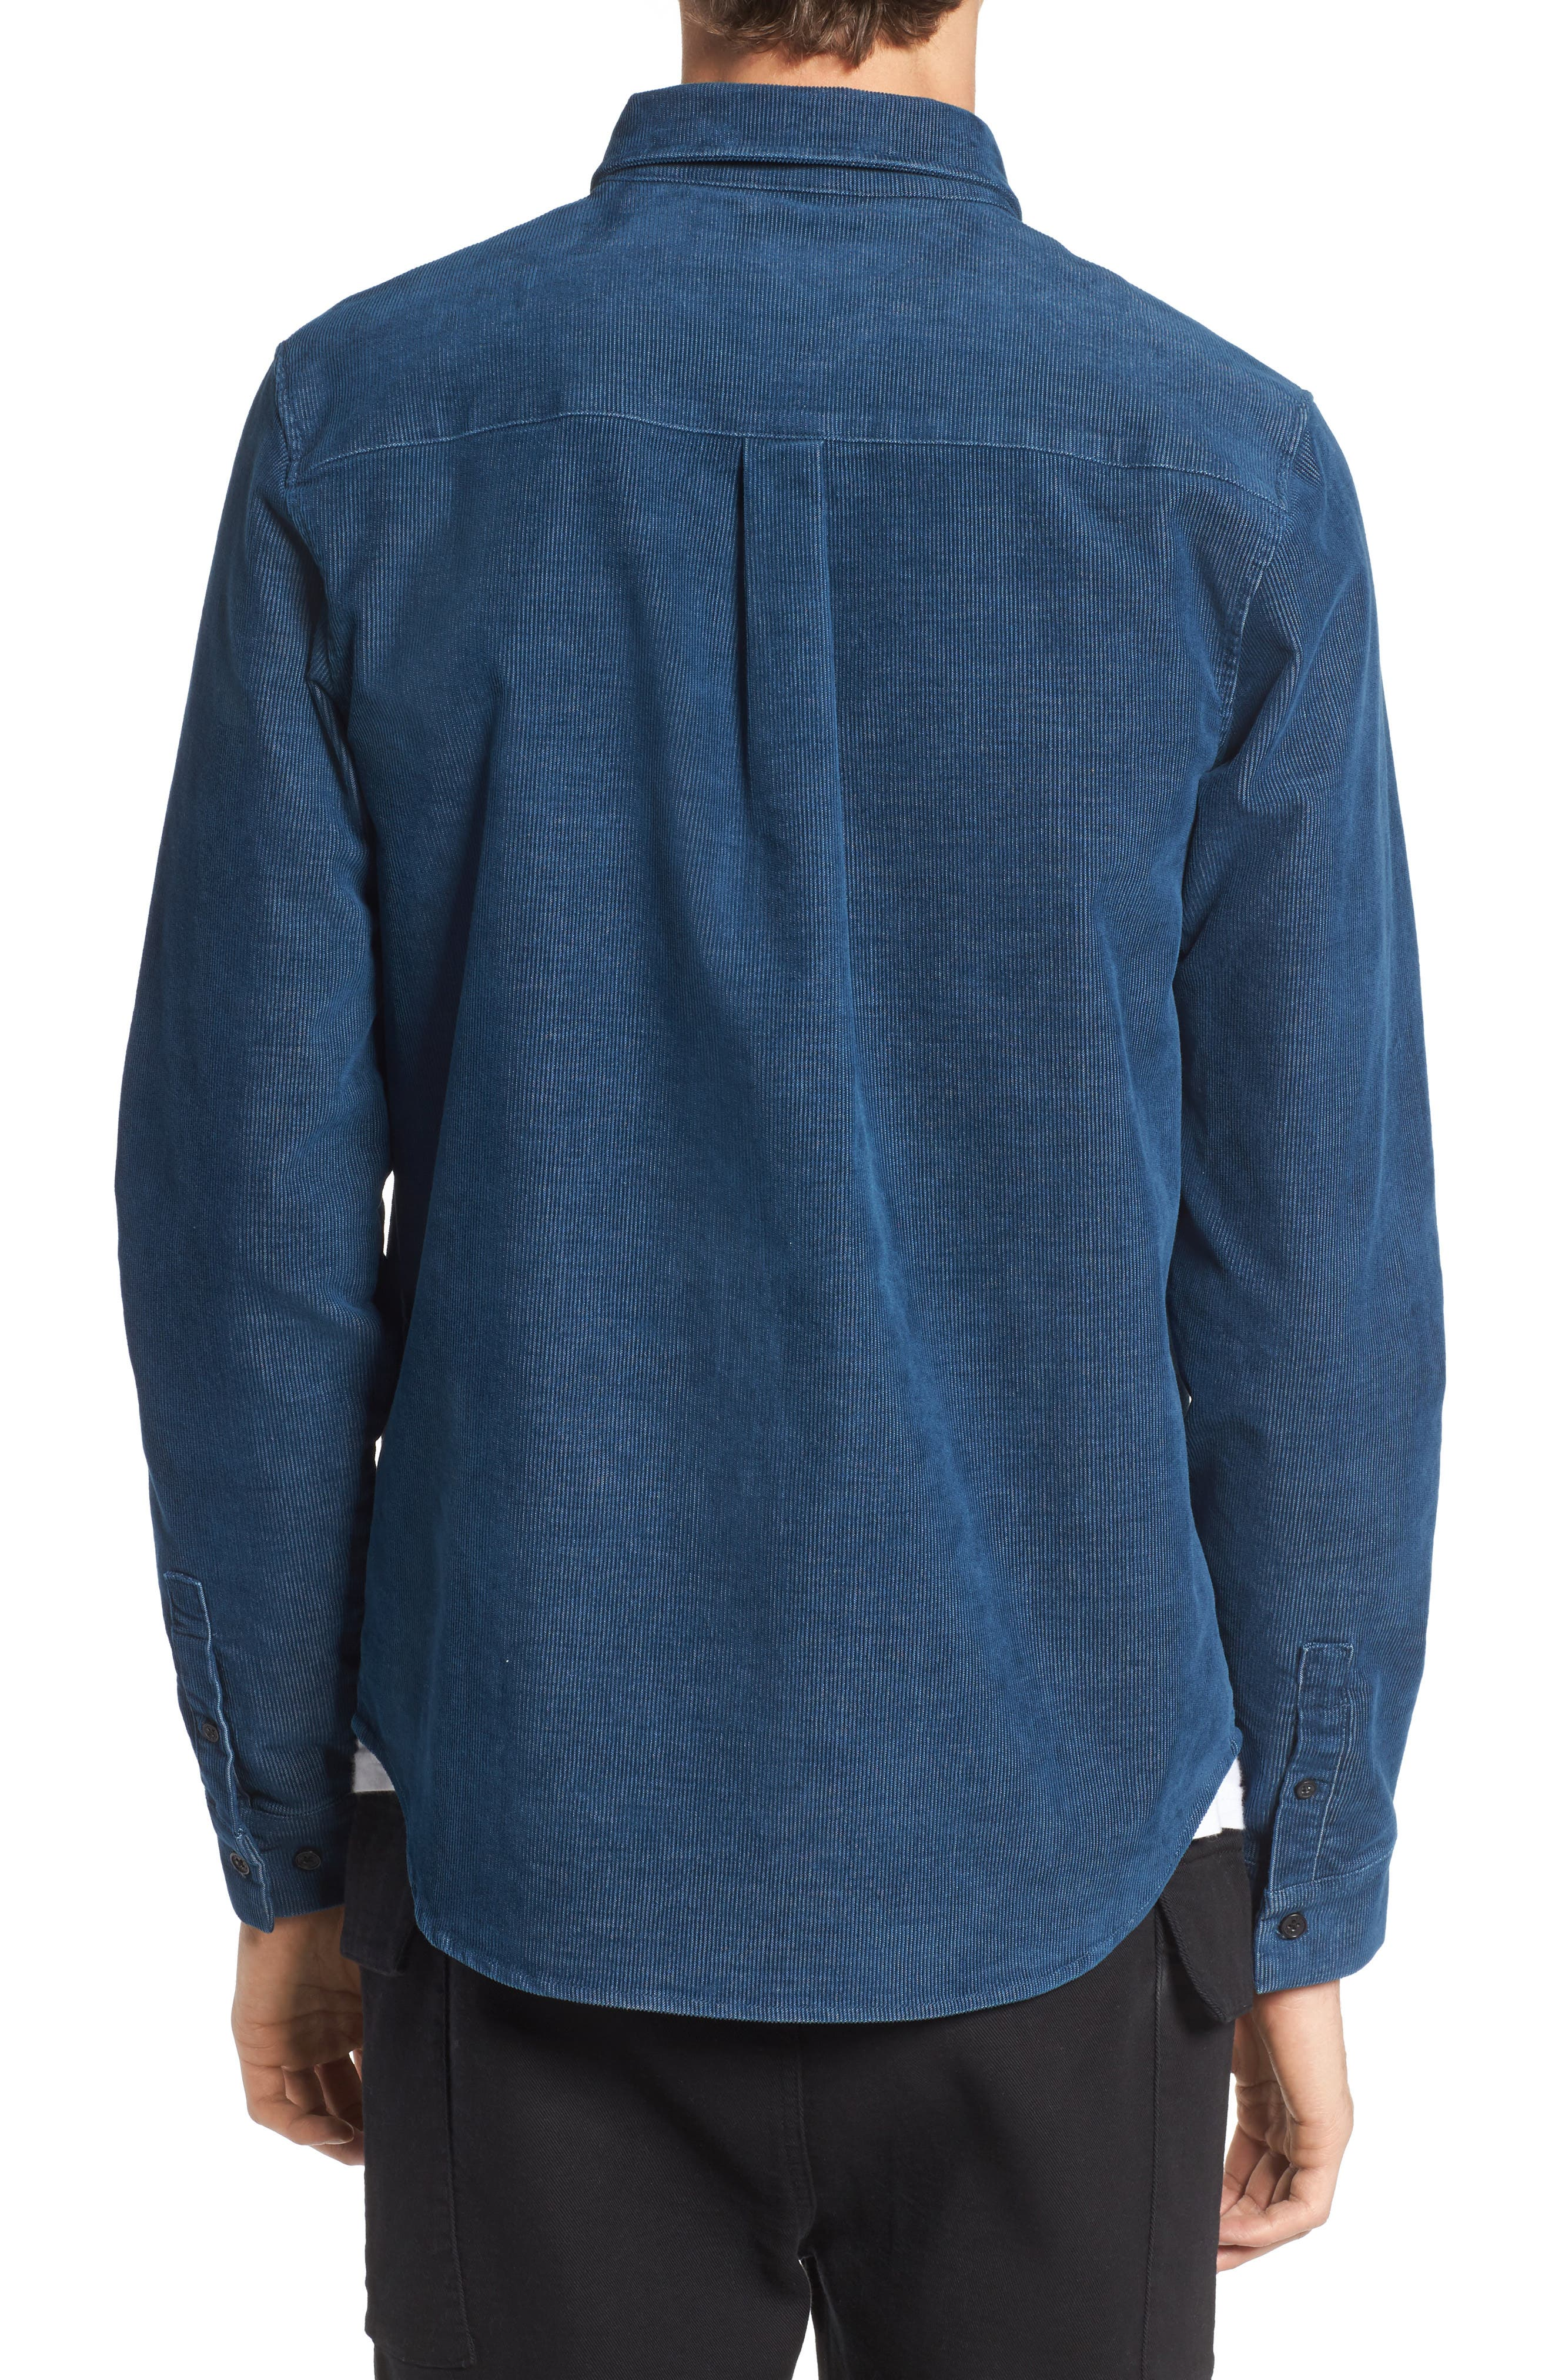 Cheriton Corduroy Shirt,                             Alternate thumbnail 2, color,                             Blue